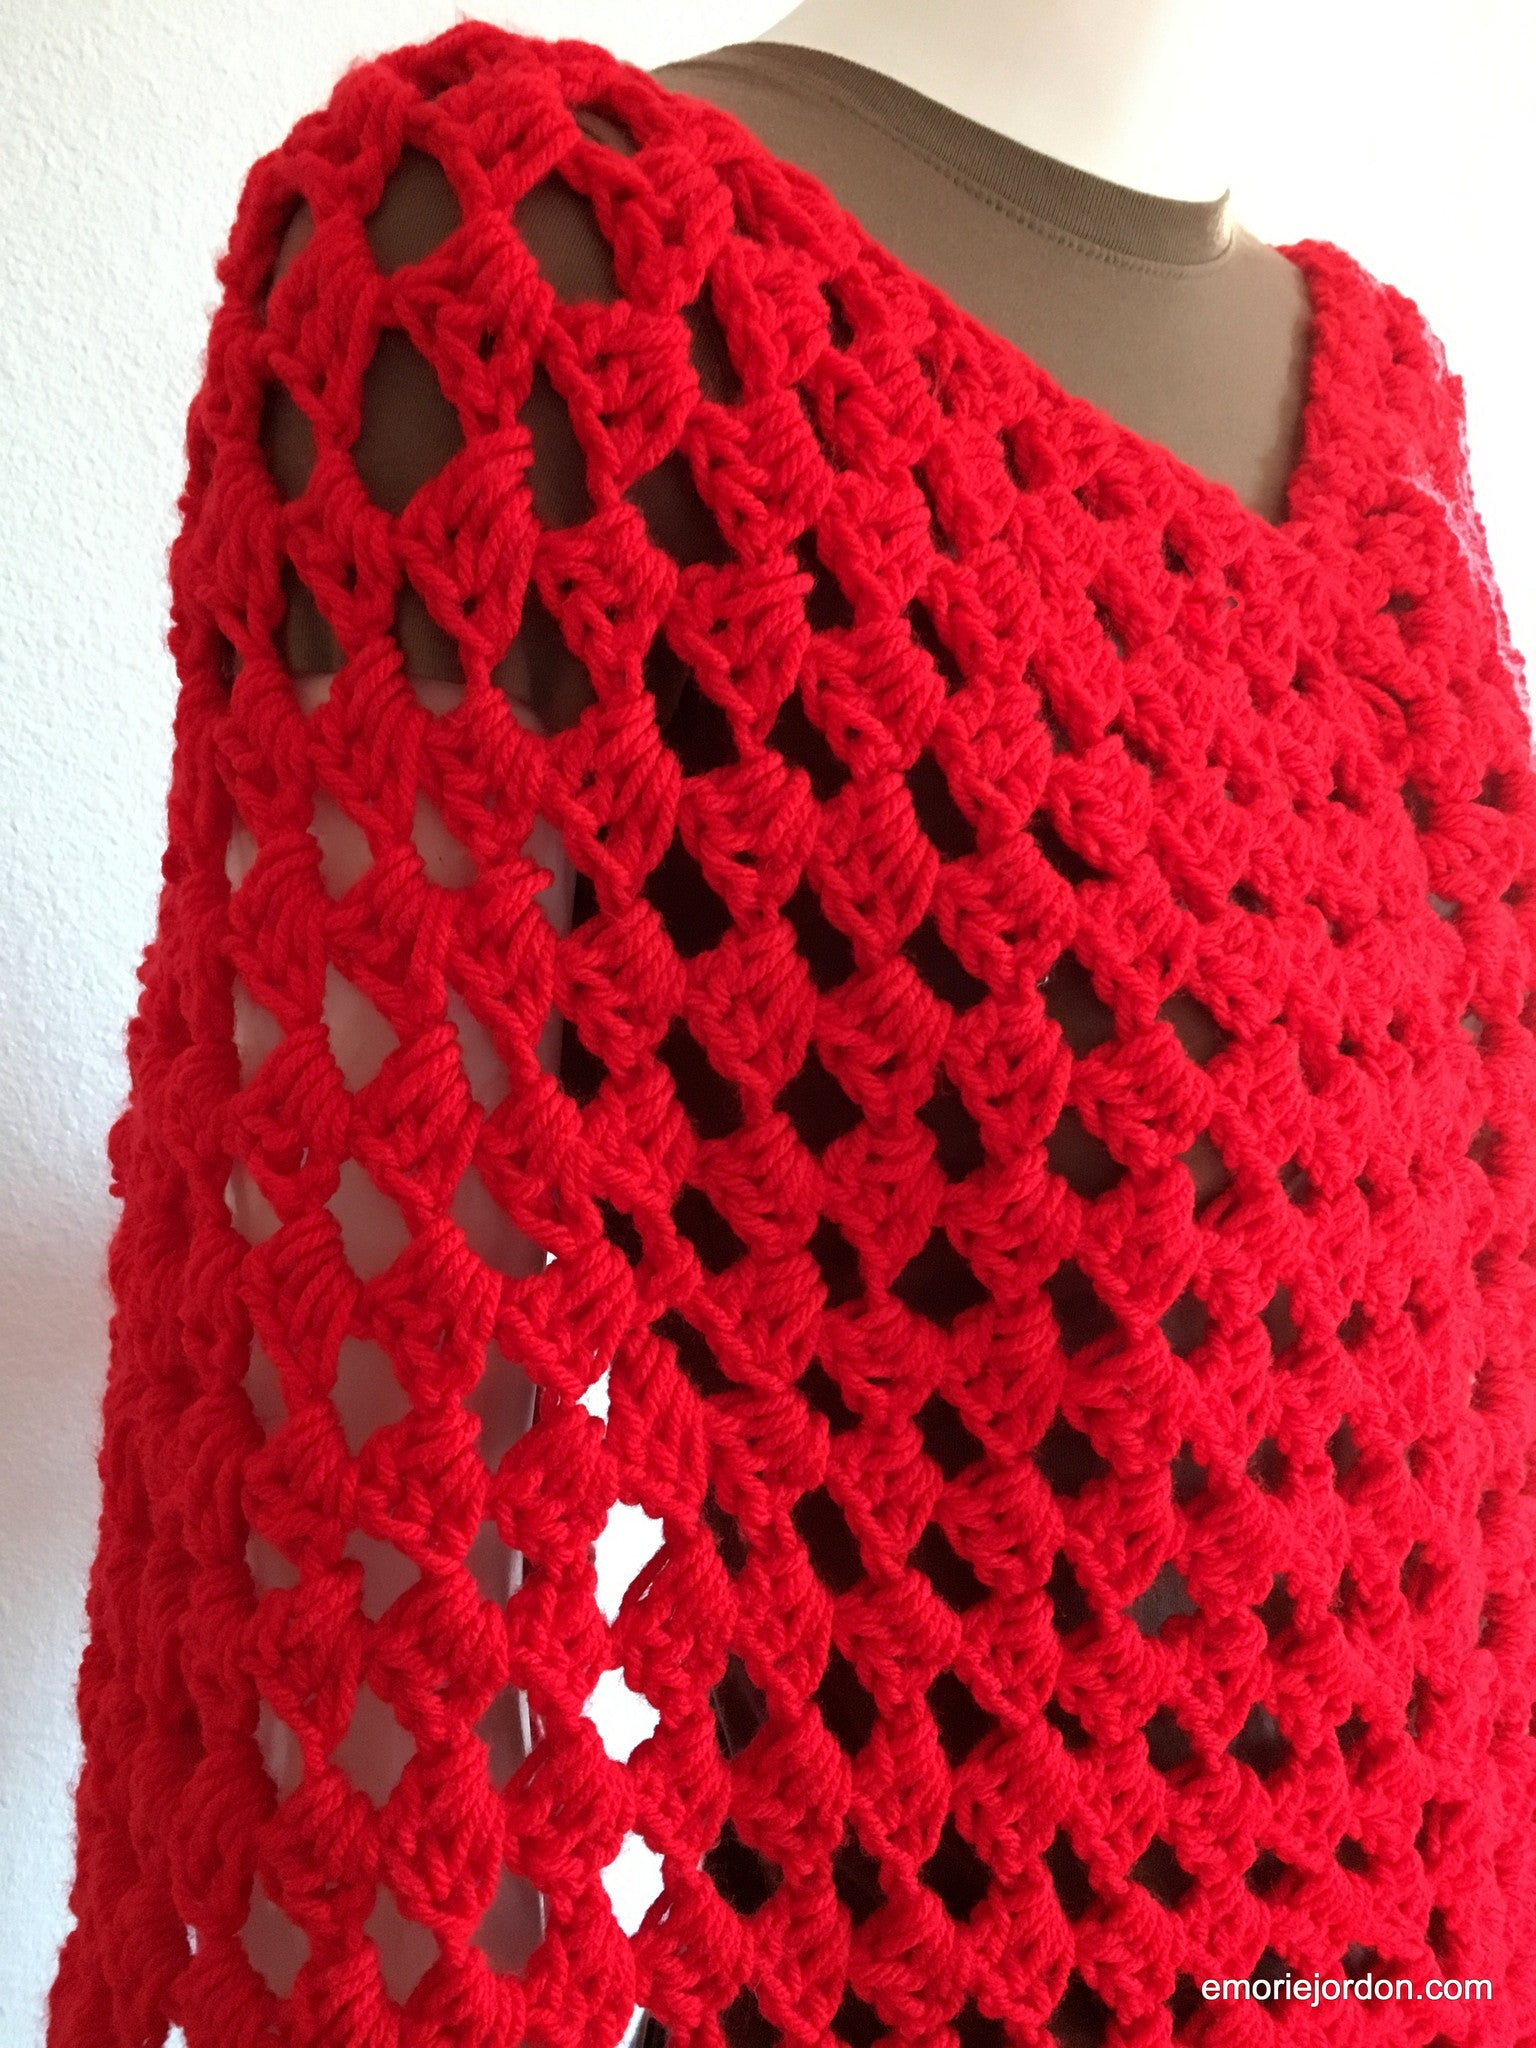 Vintage: Handmade Lady In Red Shawl